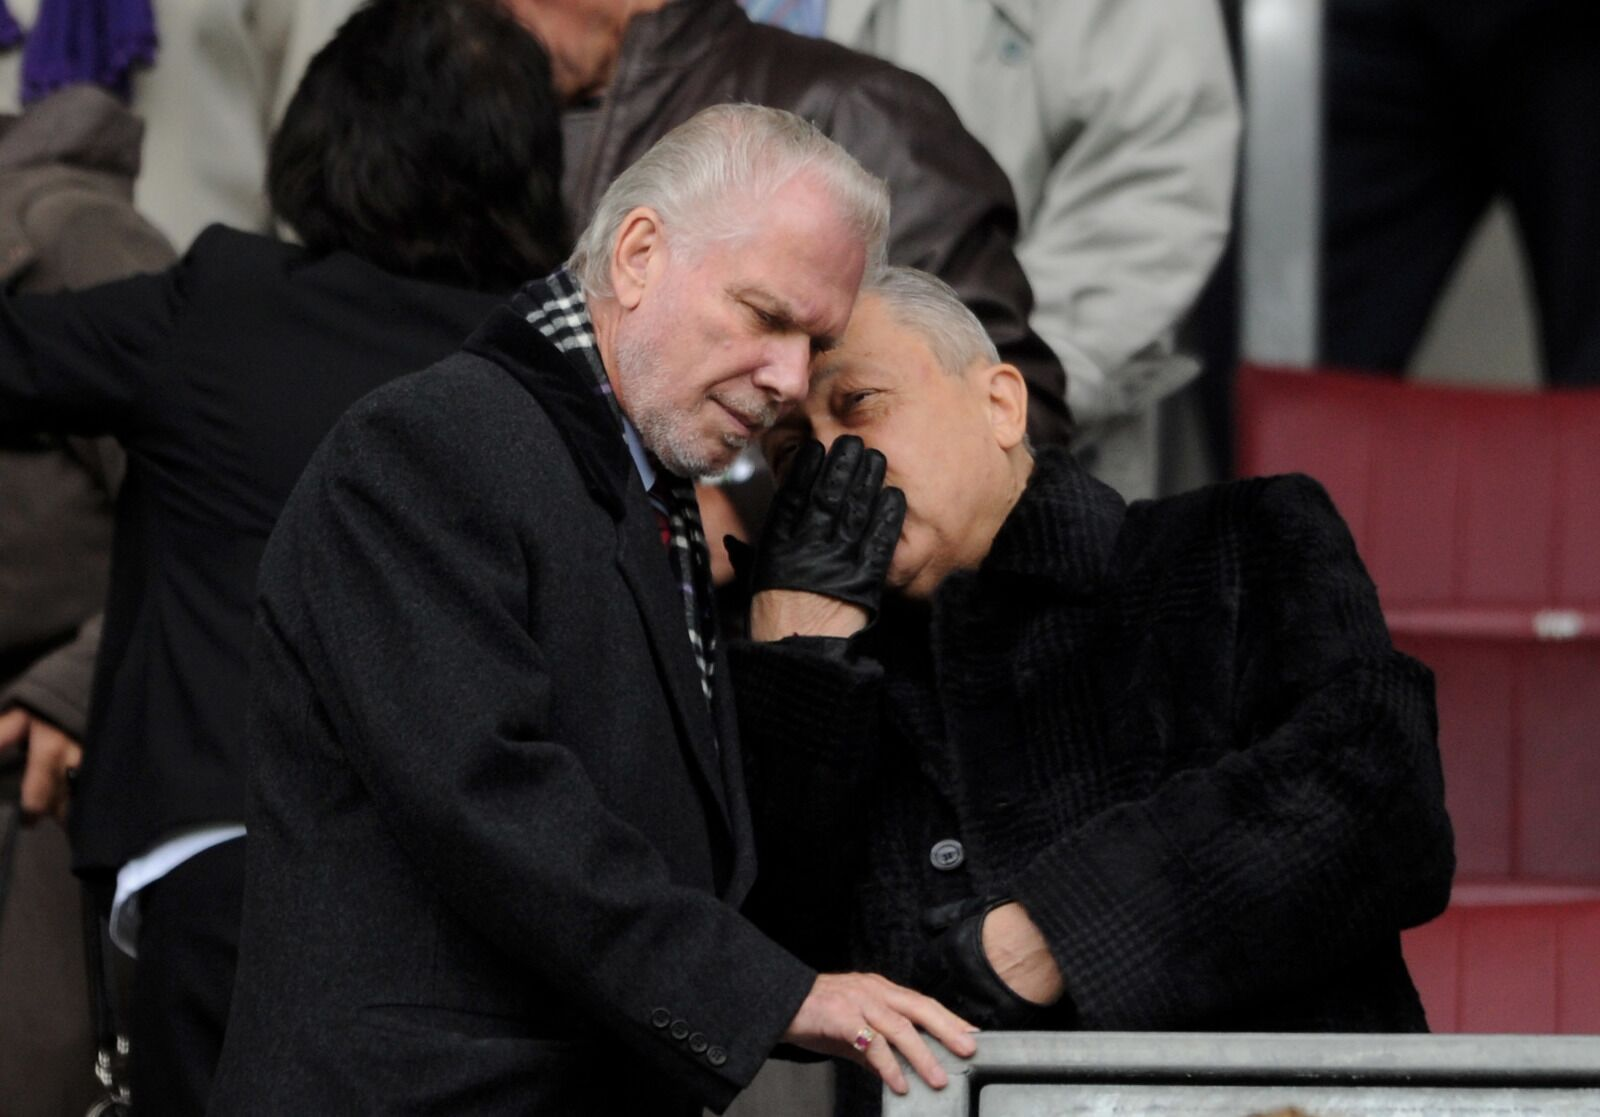 Are West Ham going to sign anyone before the window closes?